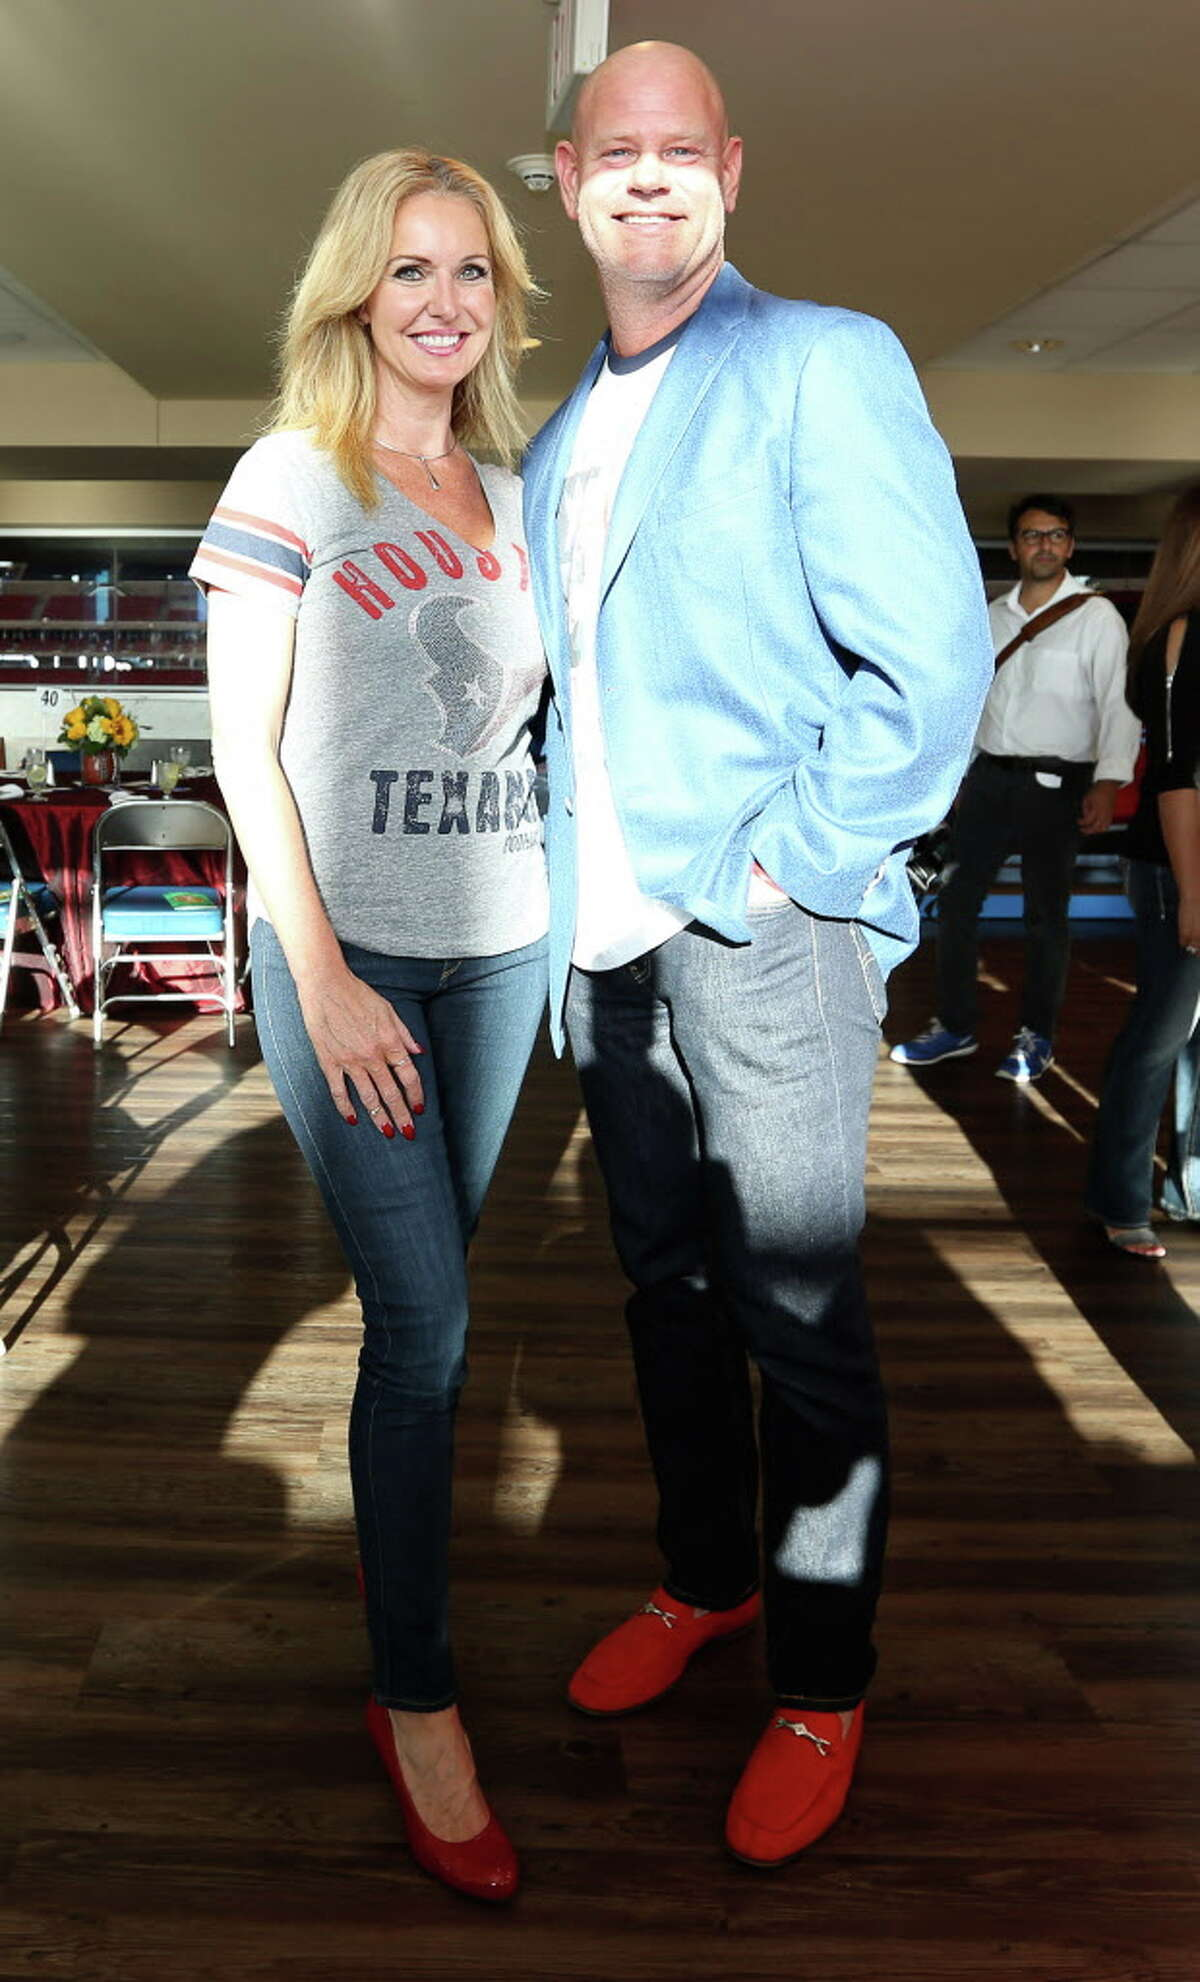 Angela Pollock and Brian Dubiski pose for a photo at the 4th Annual Fantasy Football Draft Night at NRG Stadium Wednesday, Sept. 7, 2016, in Houston. Funds raised at this event will benefit Boys & Girls Harbor.